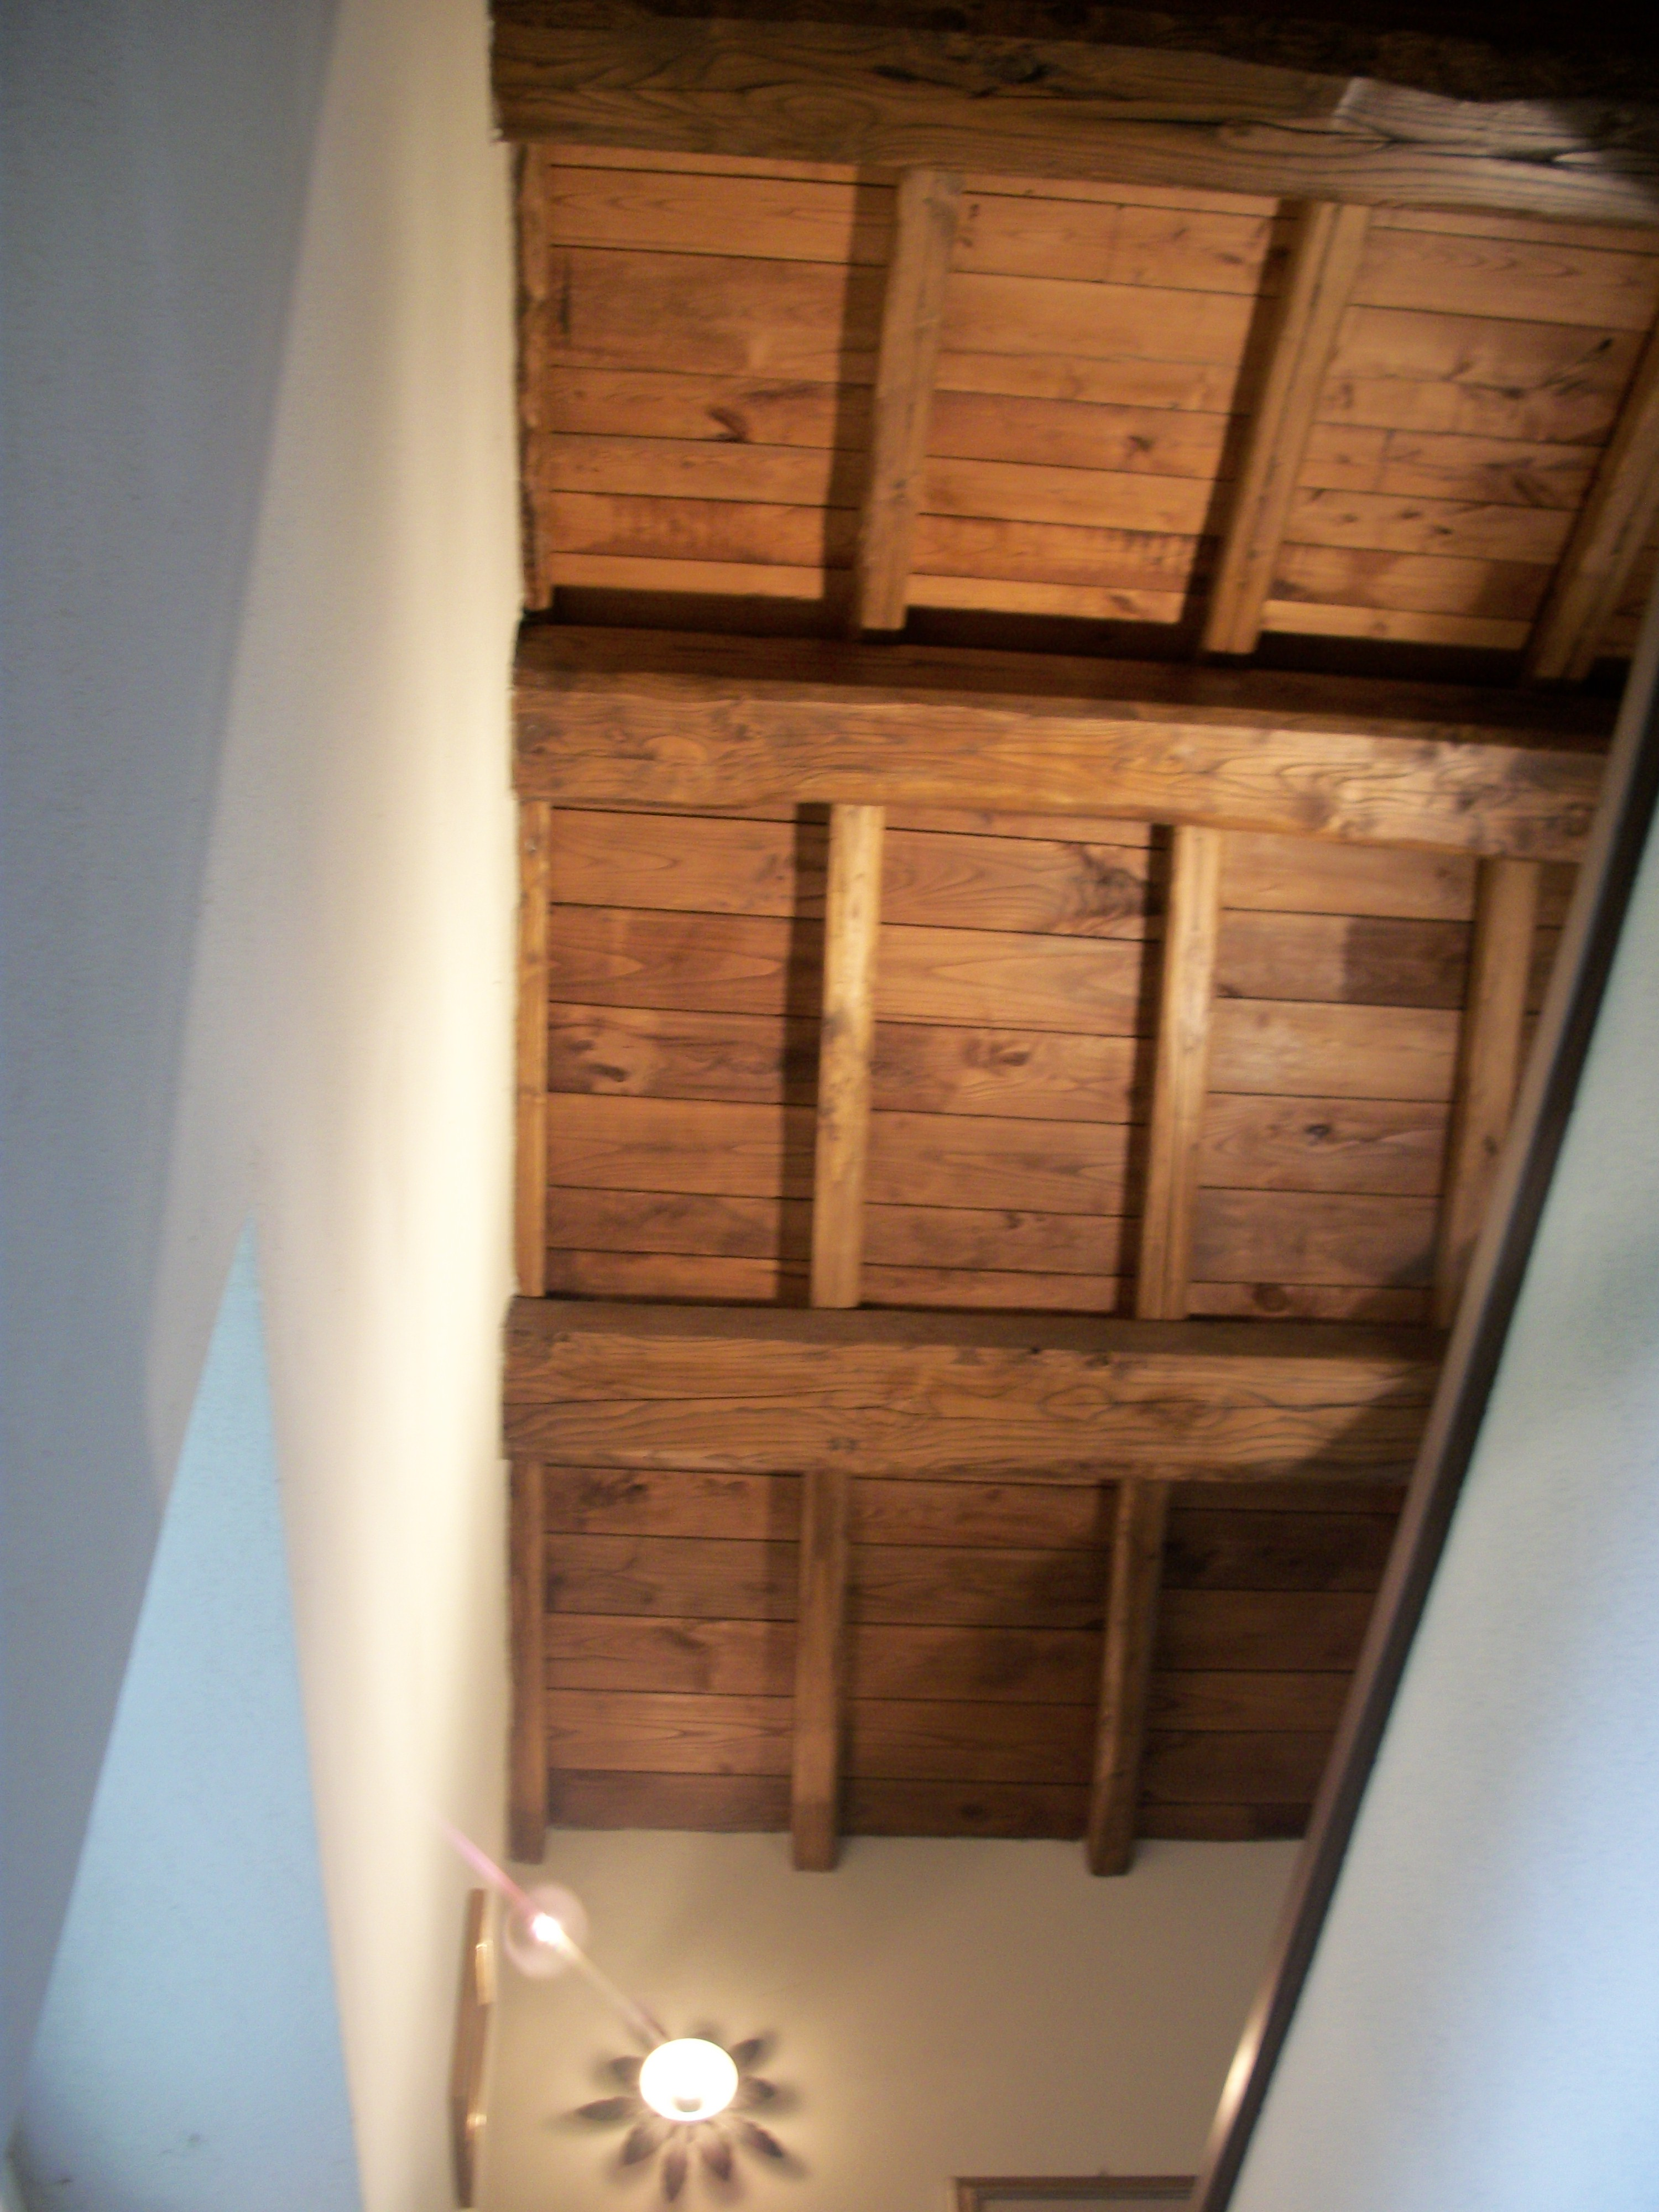 Roof chestnut beams